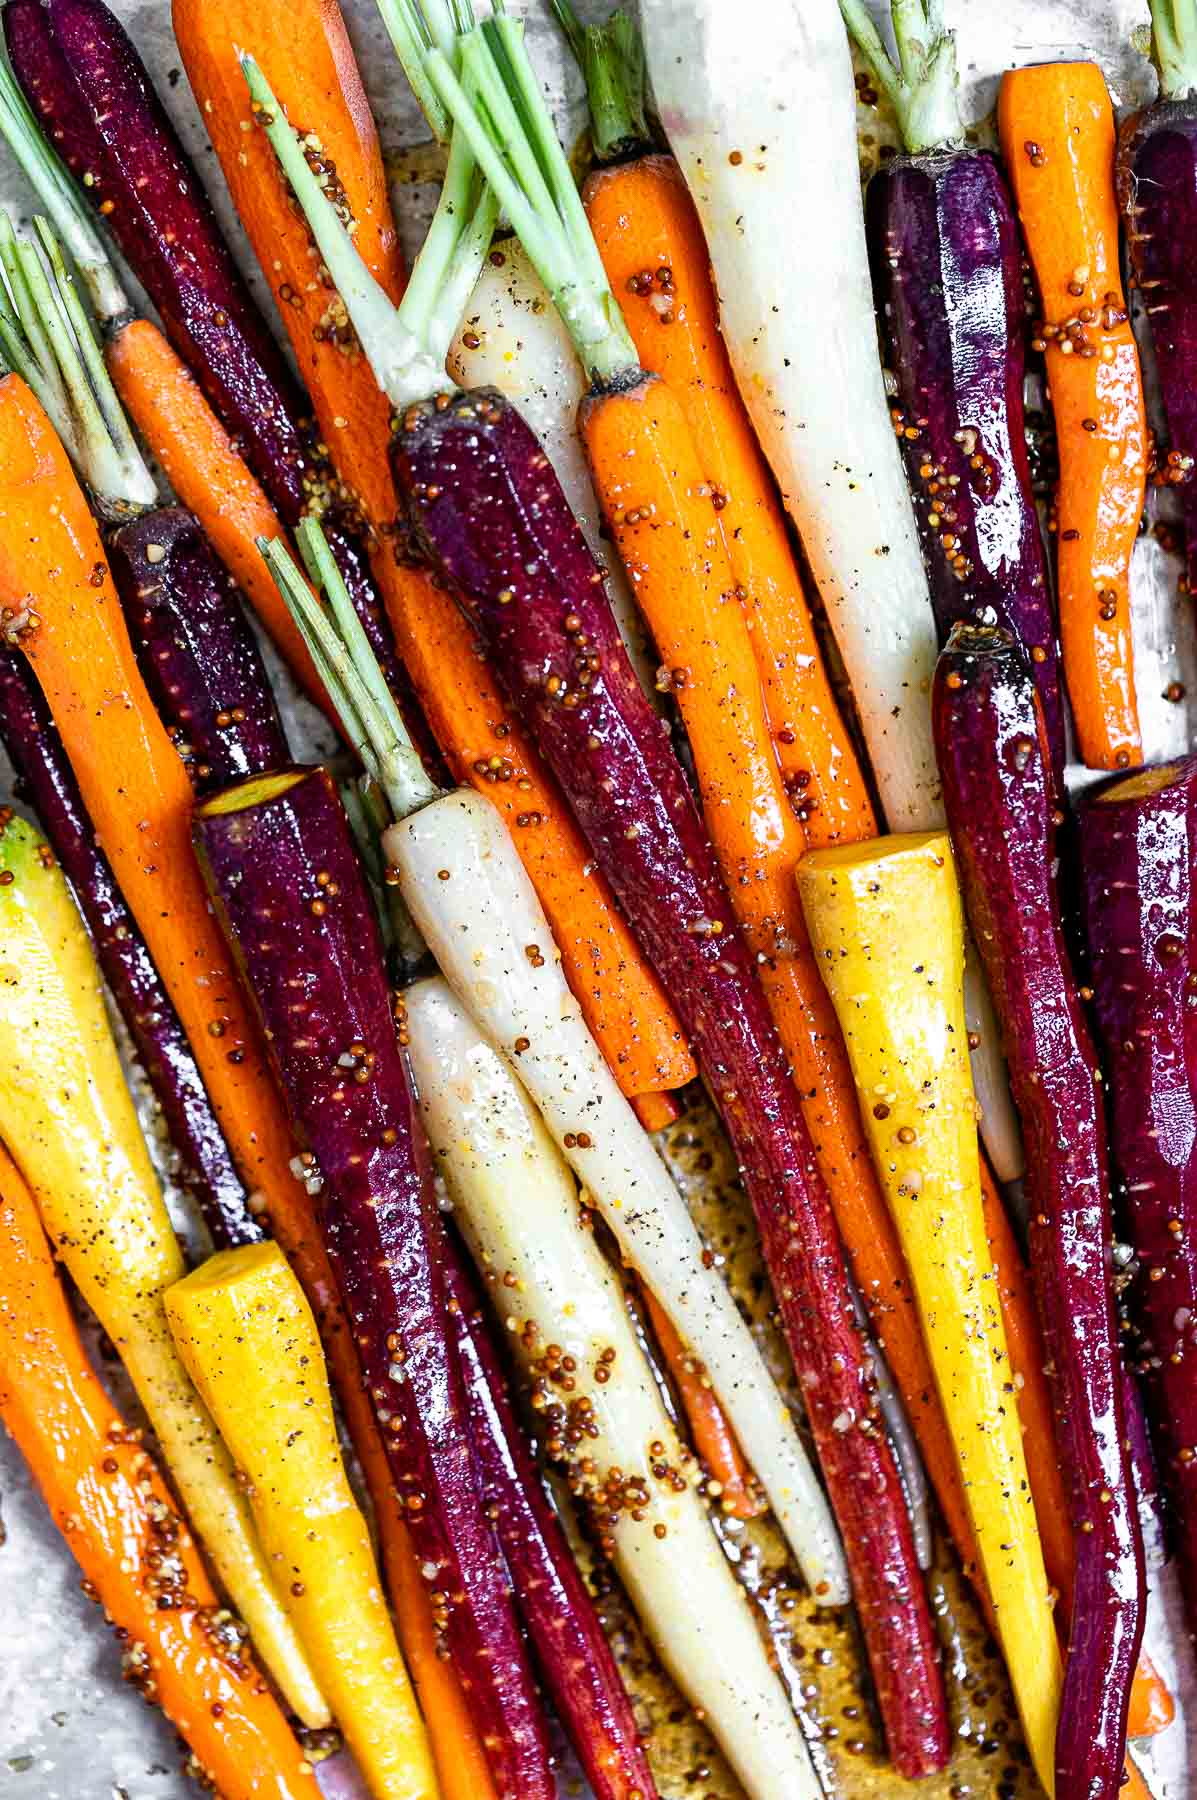 Up close image of the carrots before going in the oven.